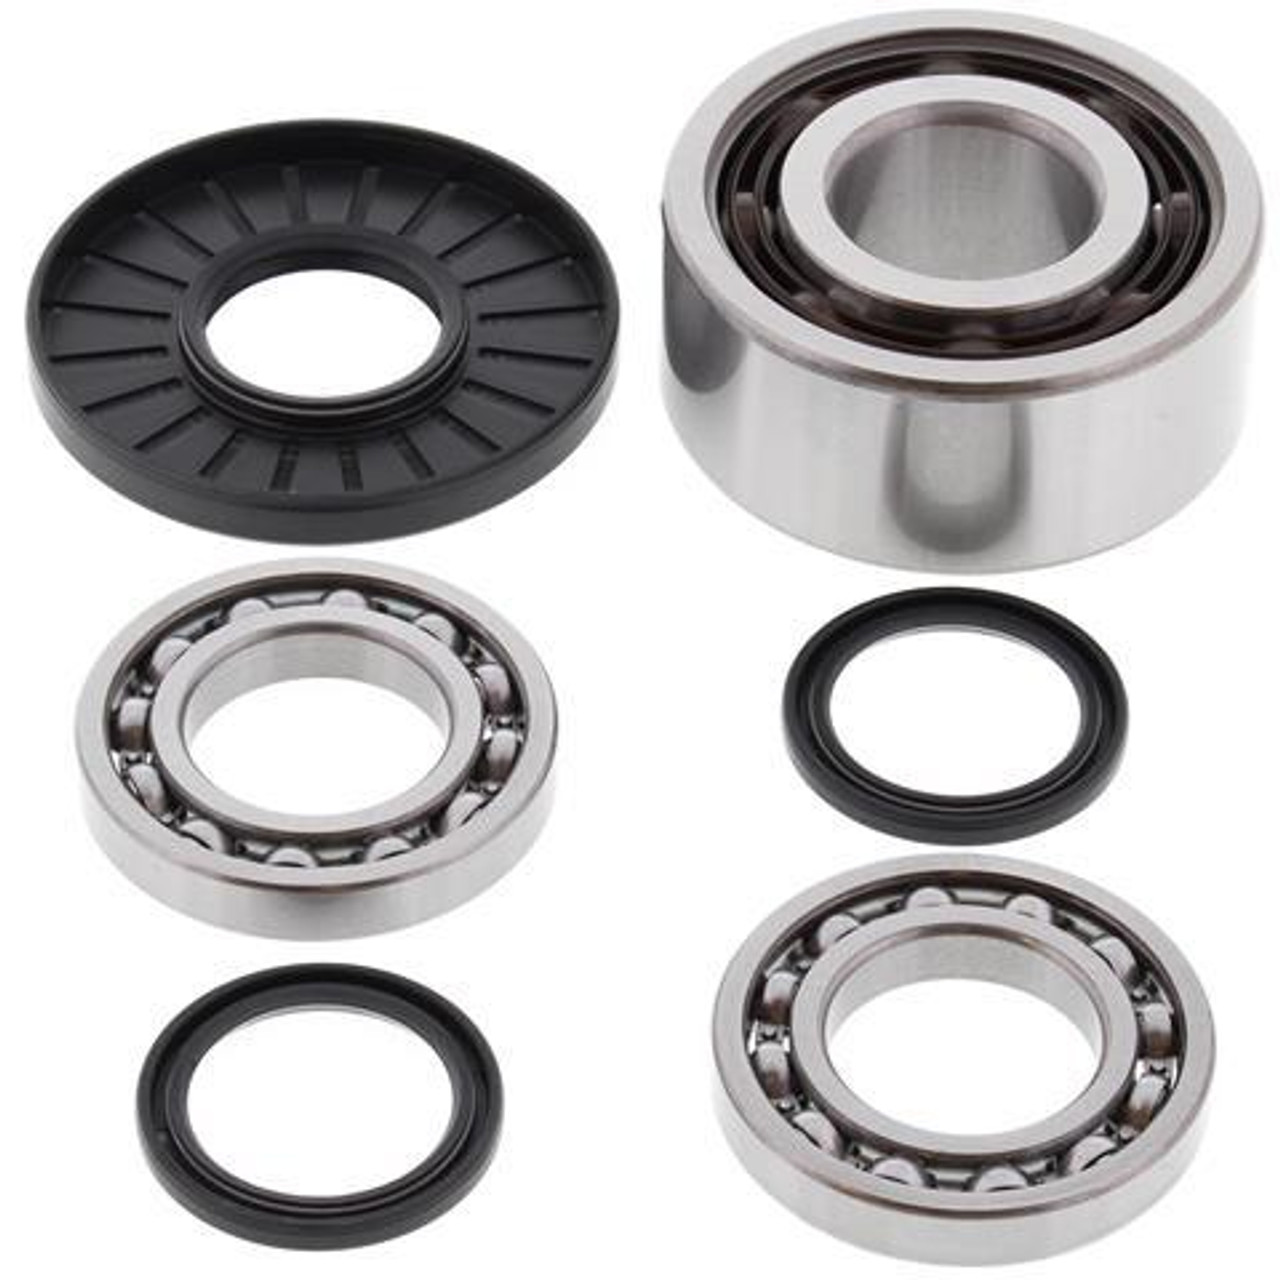 Polaris Ranger 900 RZR rear differential bearing /& seal kit 570 1000